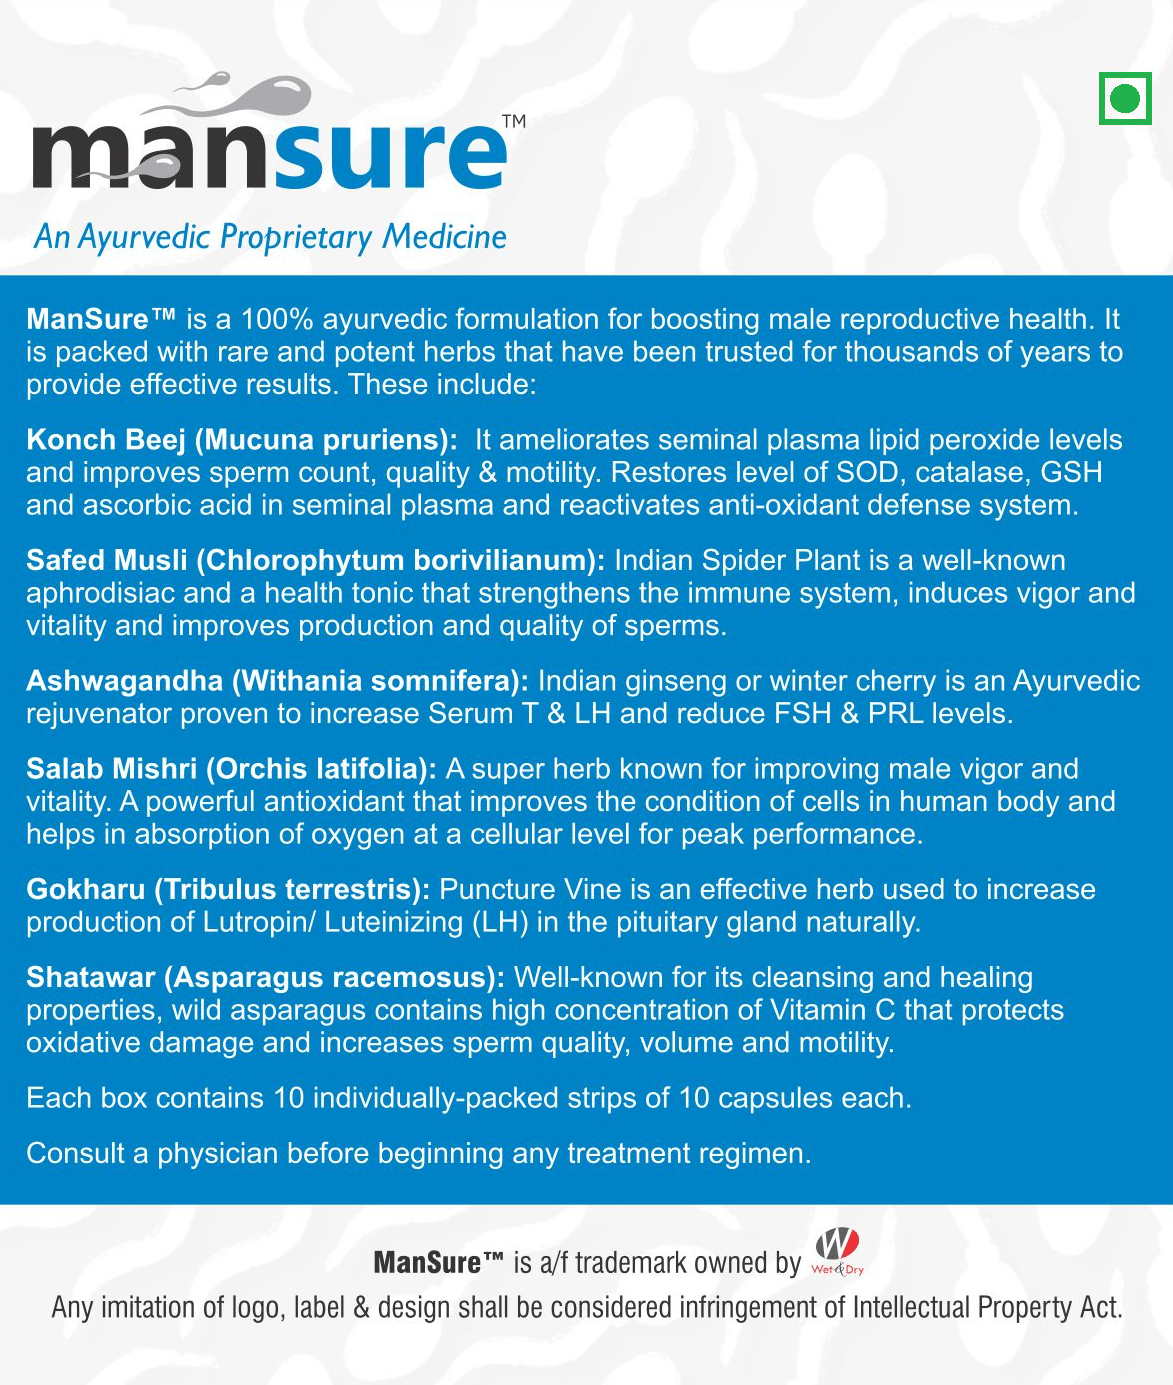 ManSure - Key ingredients and benefits